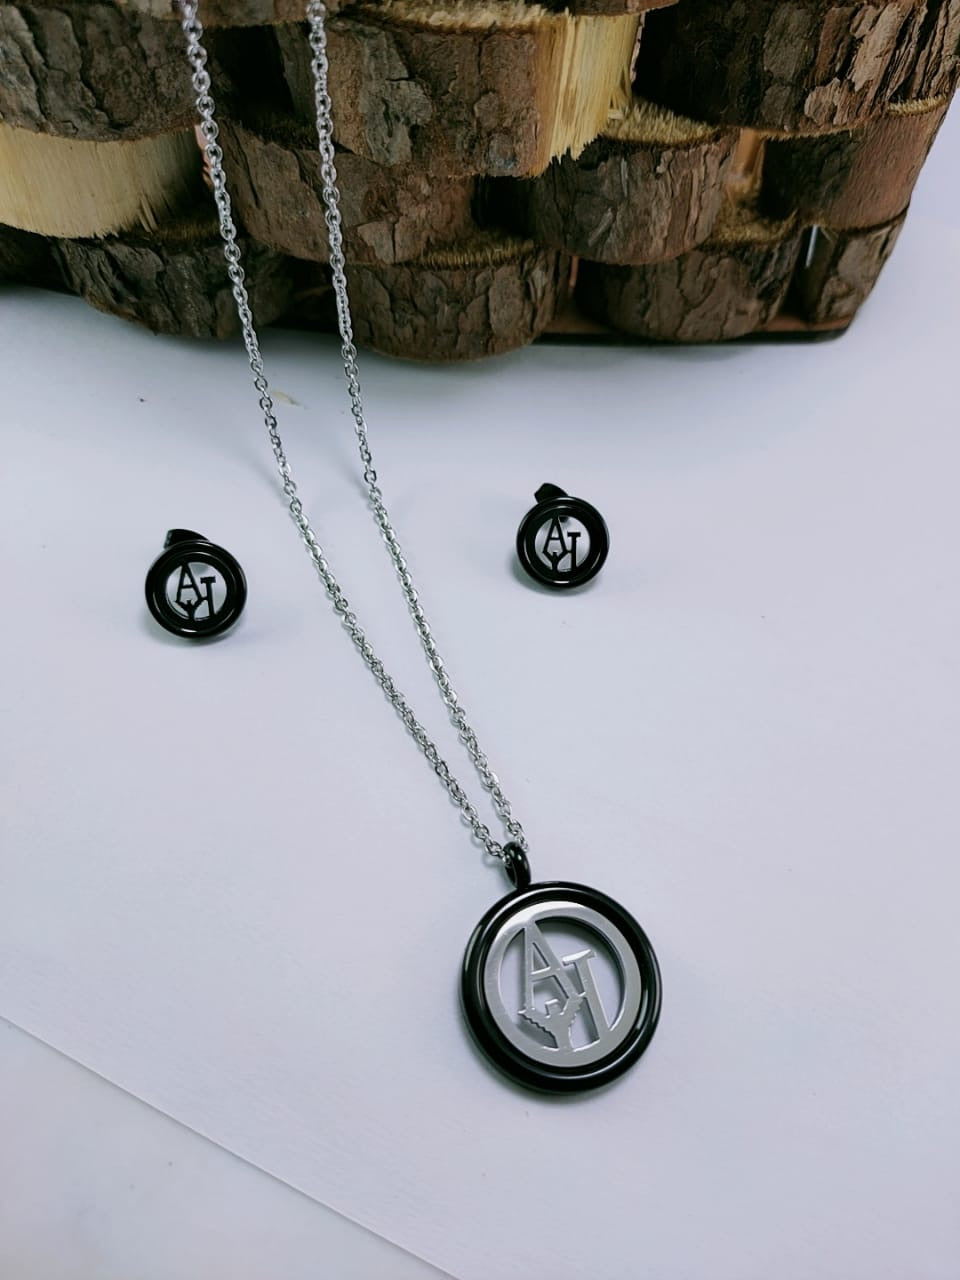 Armani AJ logo Pendant Necklace with Tops/Earrings, Black/Silver